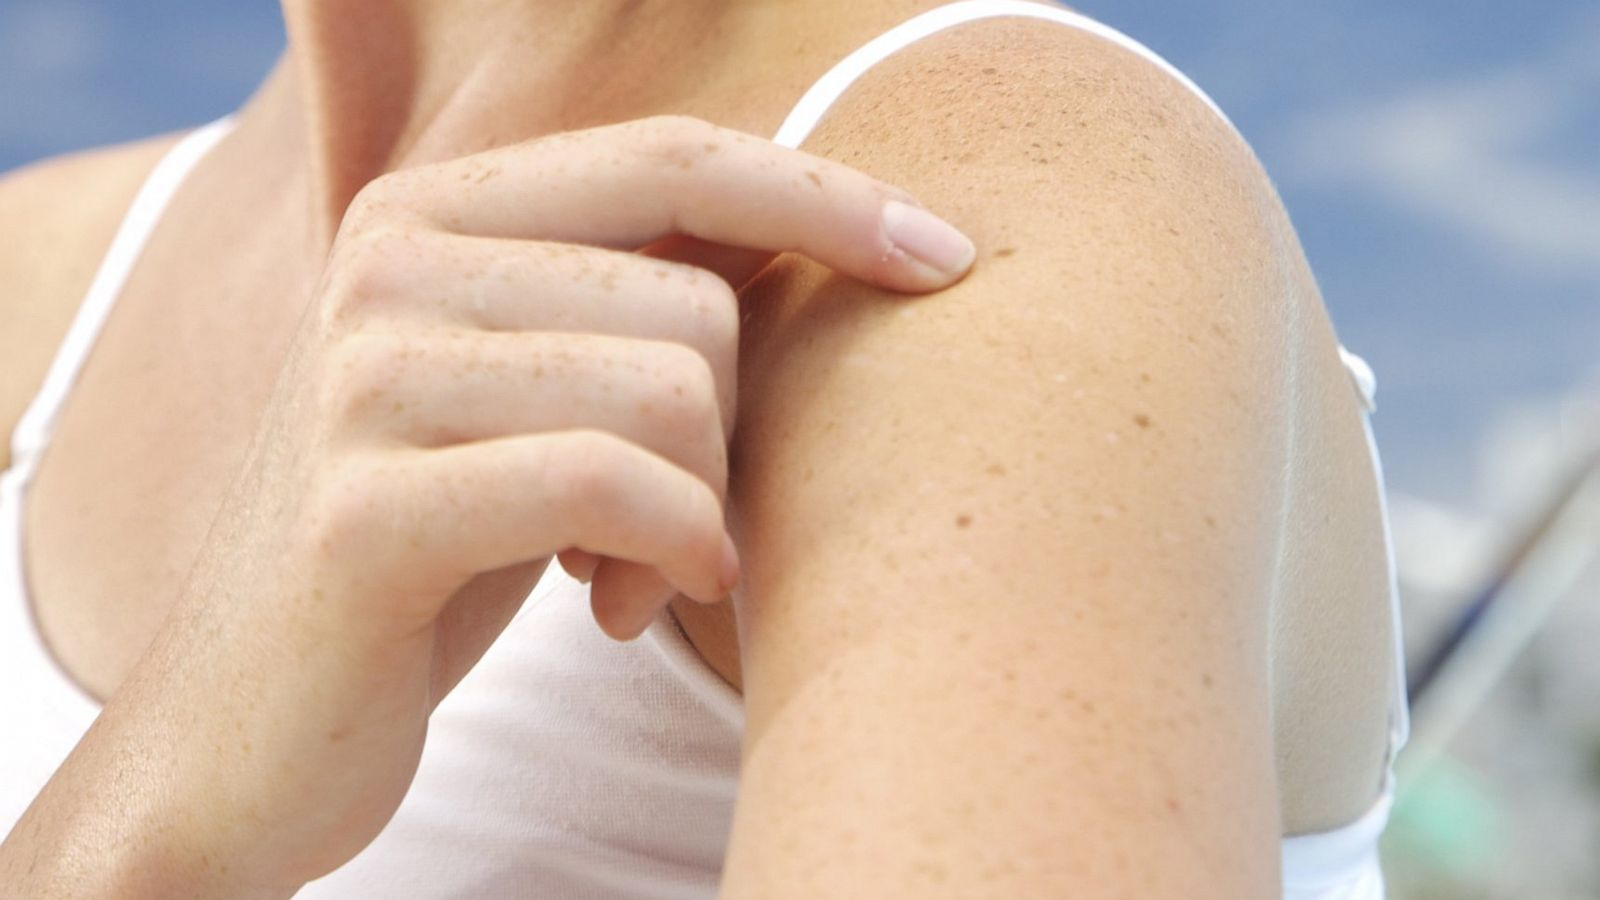 How To Perform A Self Exam For Skin Cancer Abc News